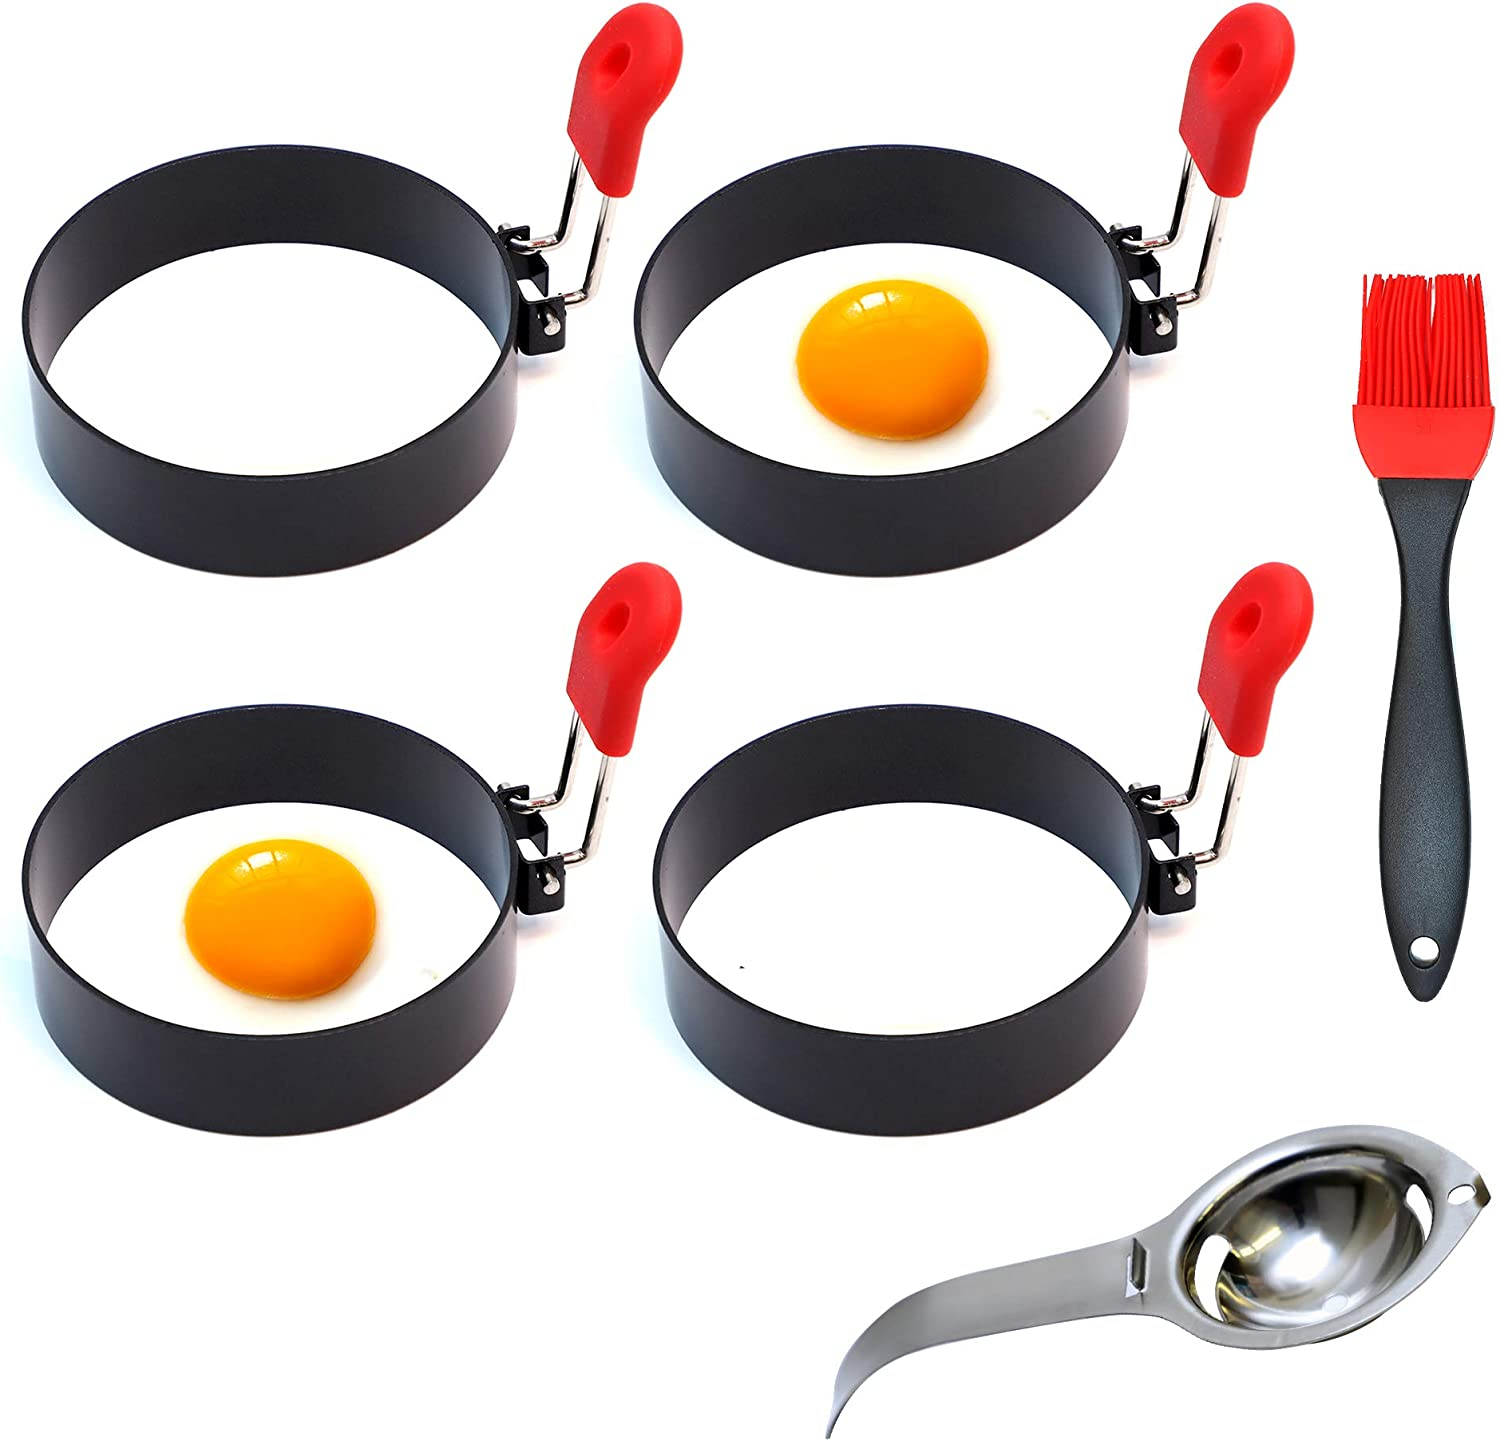 4 Pack Stainless Steel Nonstick Egg Rings For Frying Or Shaping Eggs - Round Egg Cooker Rings For Cooking Breakfast Omelette Egg McMuffin Sandwiches Maker Pancake Mold English Muffins 100% Food Grade